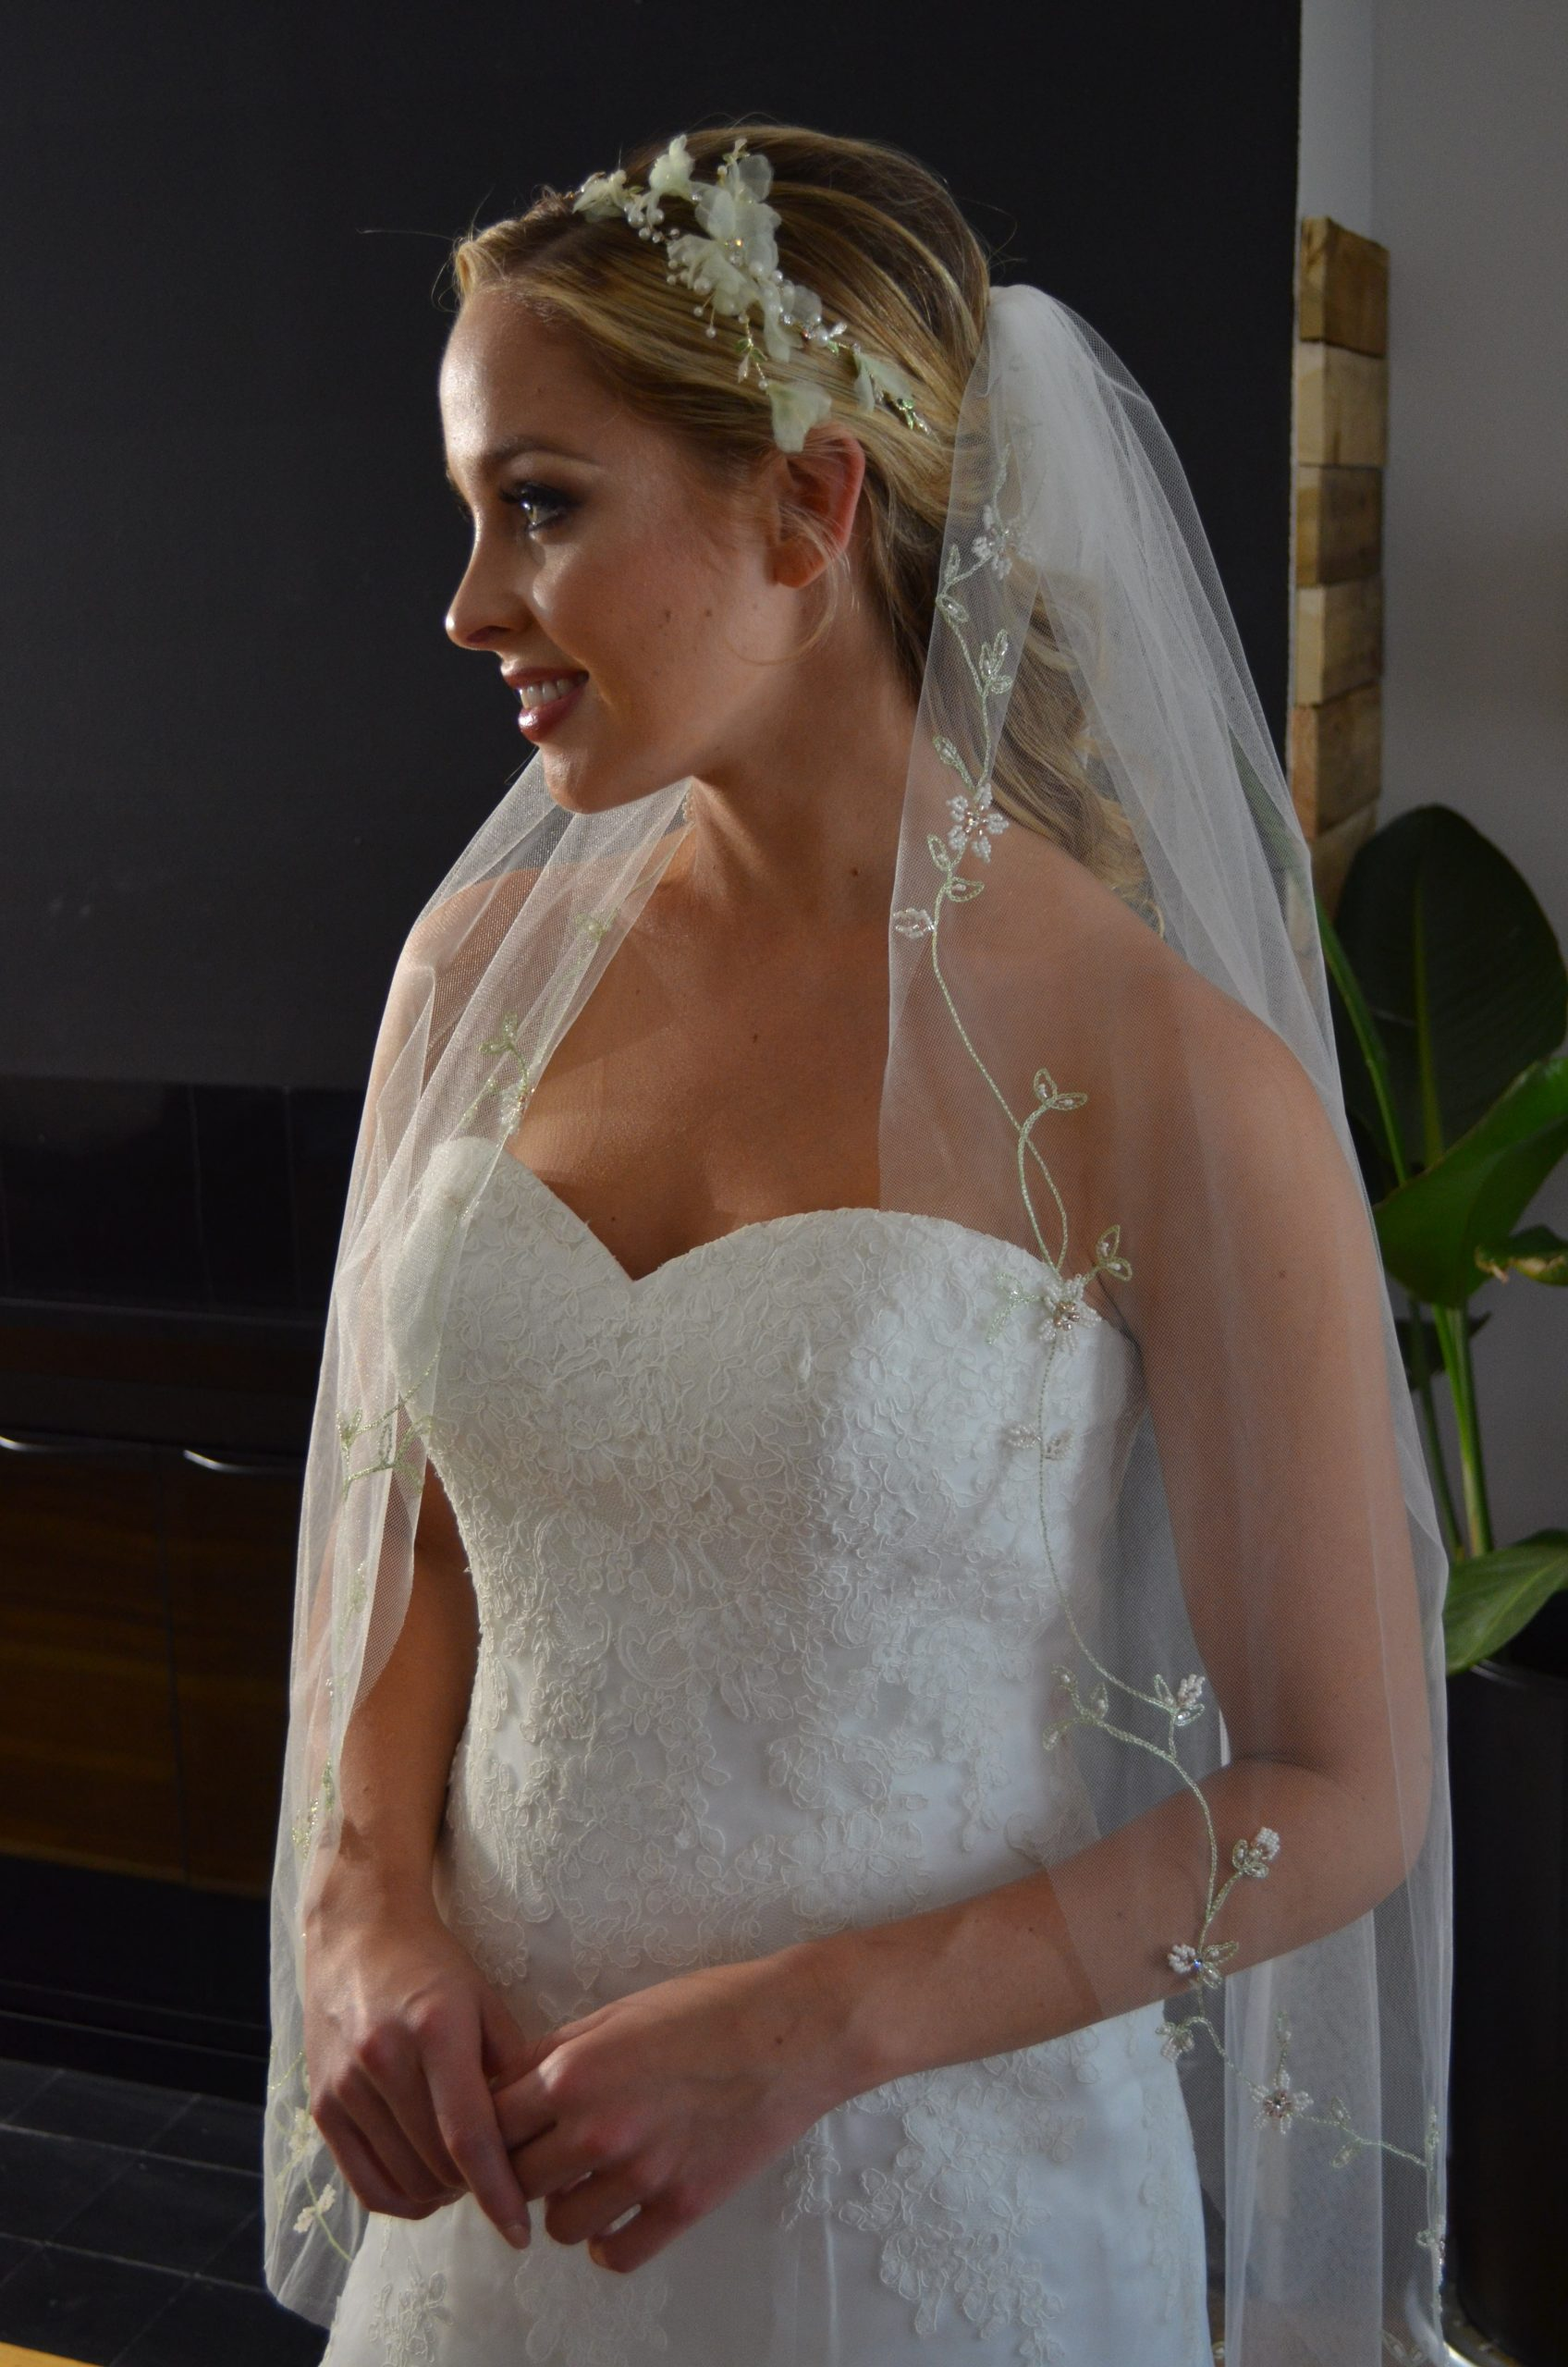 Elena E1210 One tier veil with embroidered floral vines along the edge embellished with beaded floral accents.